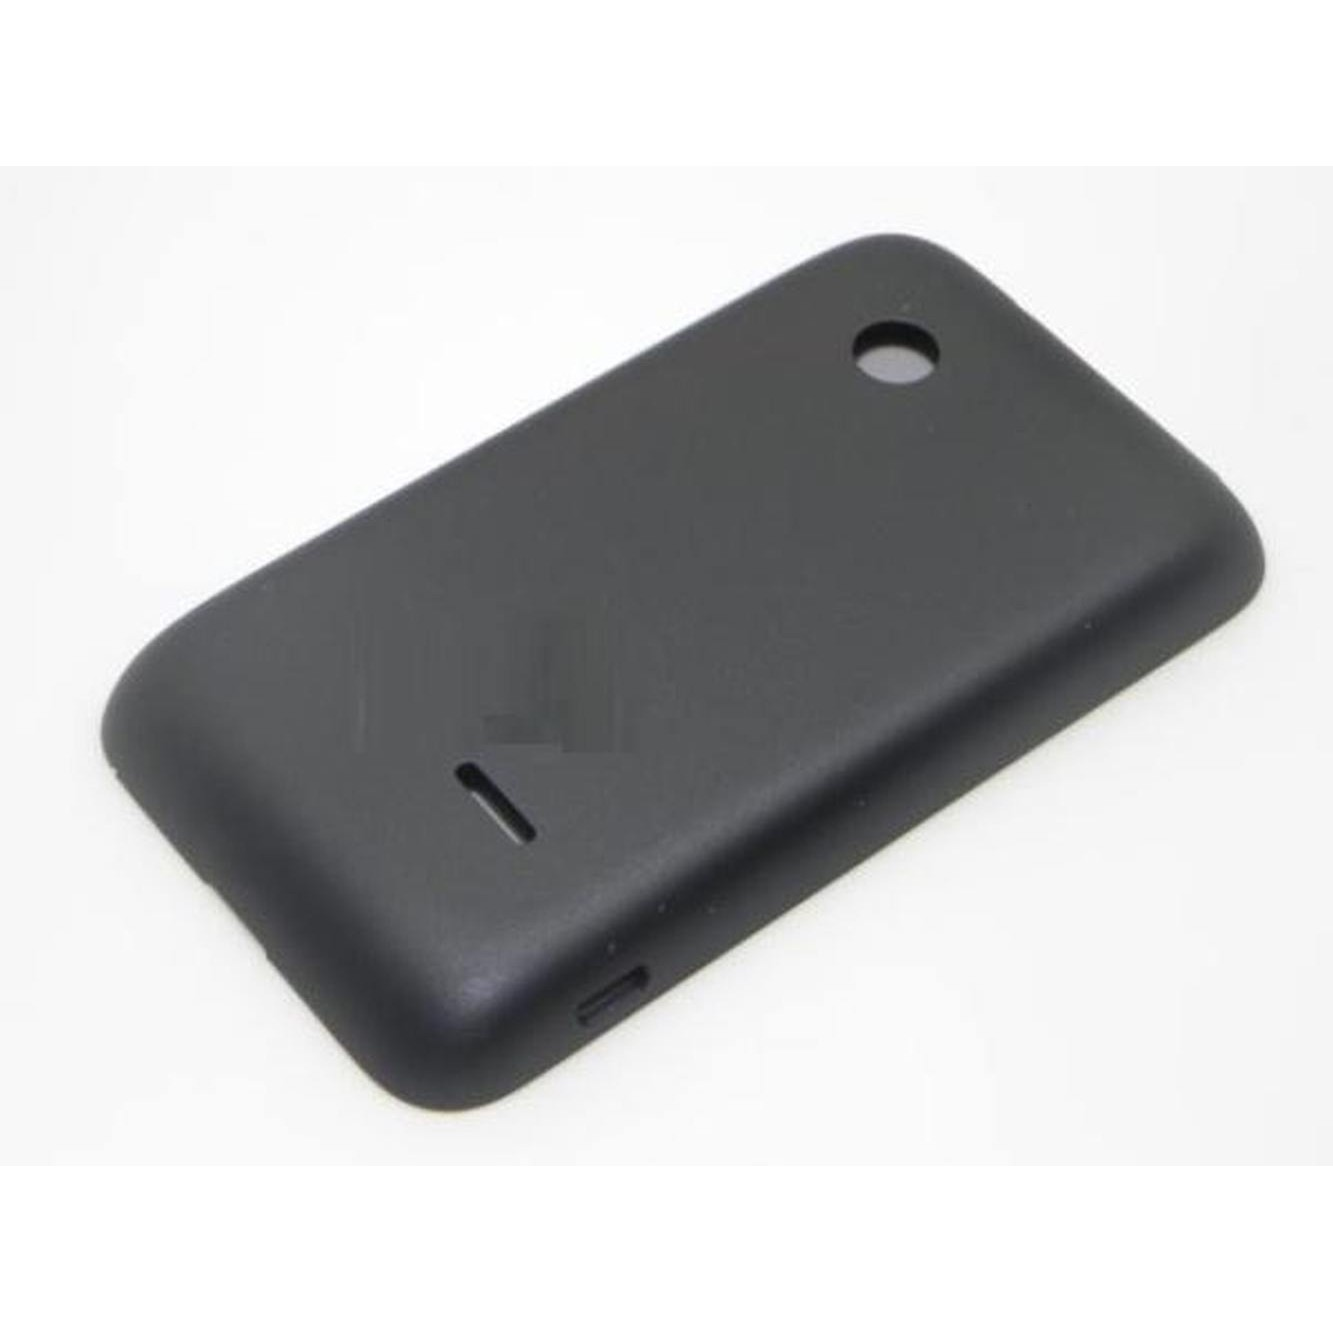 reputable site 57164 365ba Back Panel Cover for Sony Xperia Tipo - Black